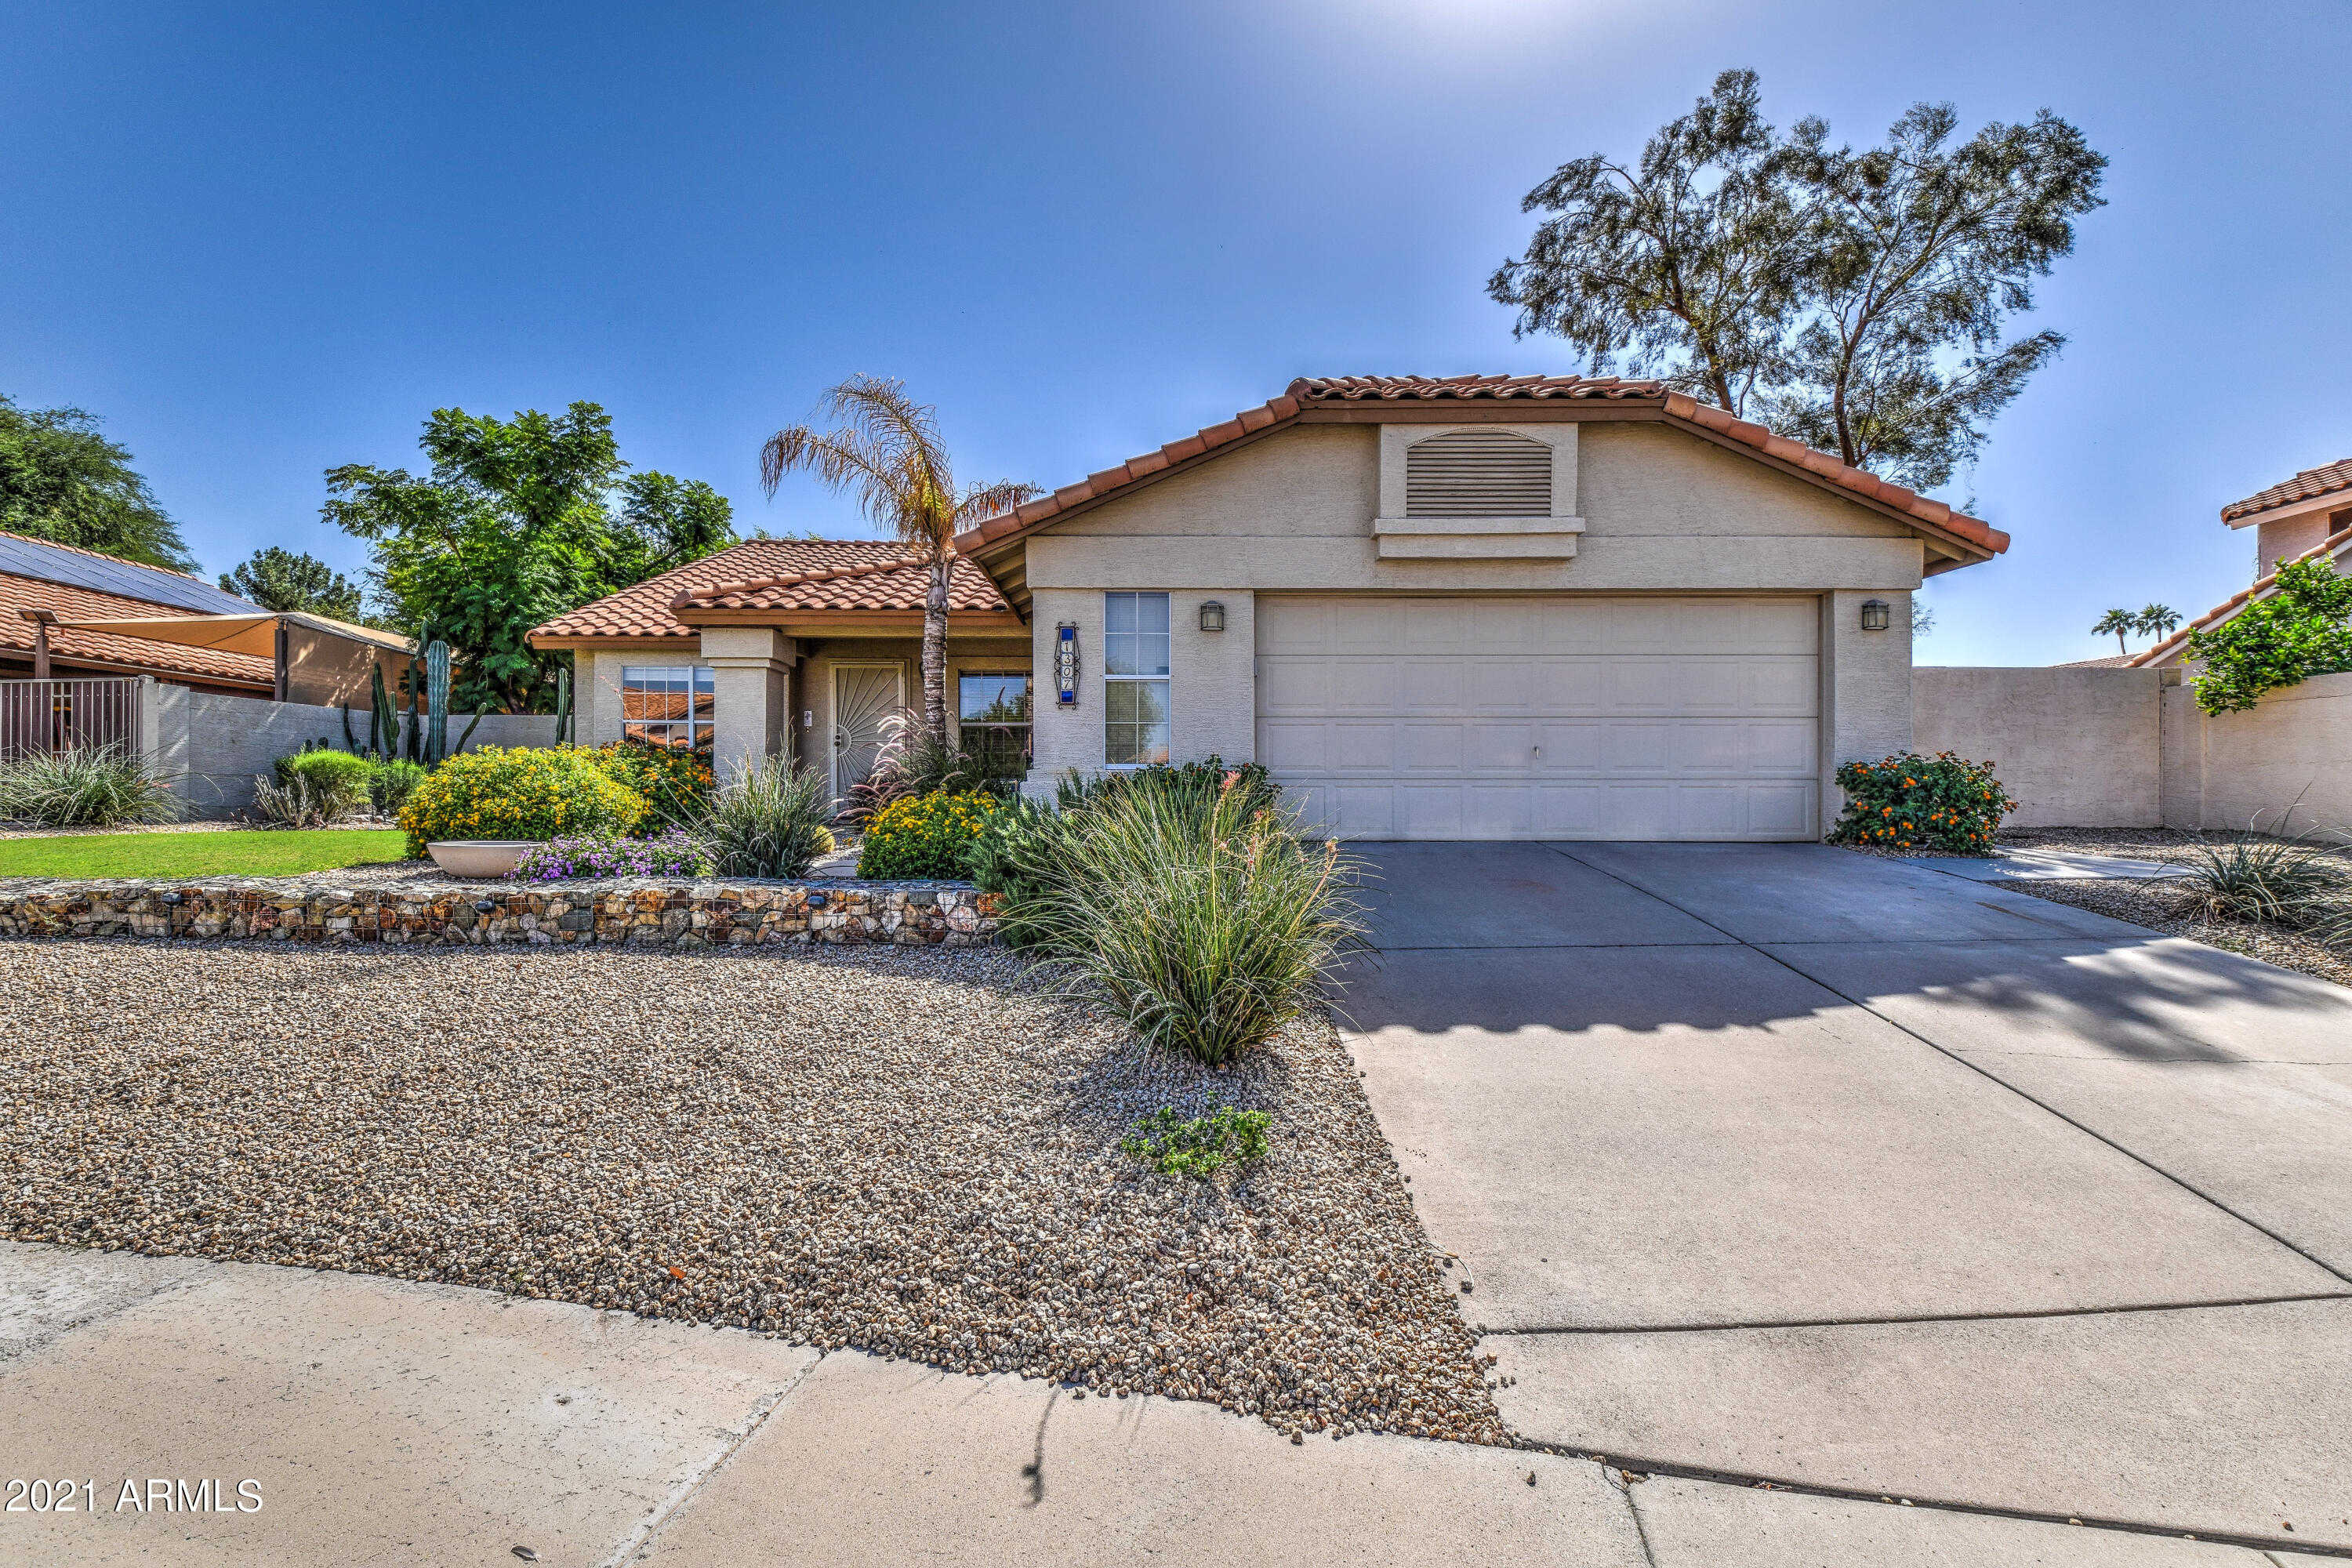 $469,900 - 4Br/2Ba - Home for Sale in Canyon View Lot 1-91, Phoenix